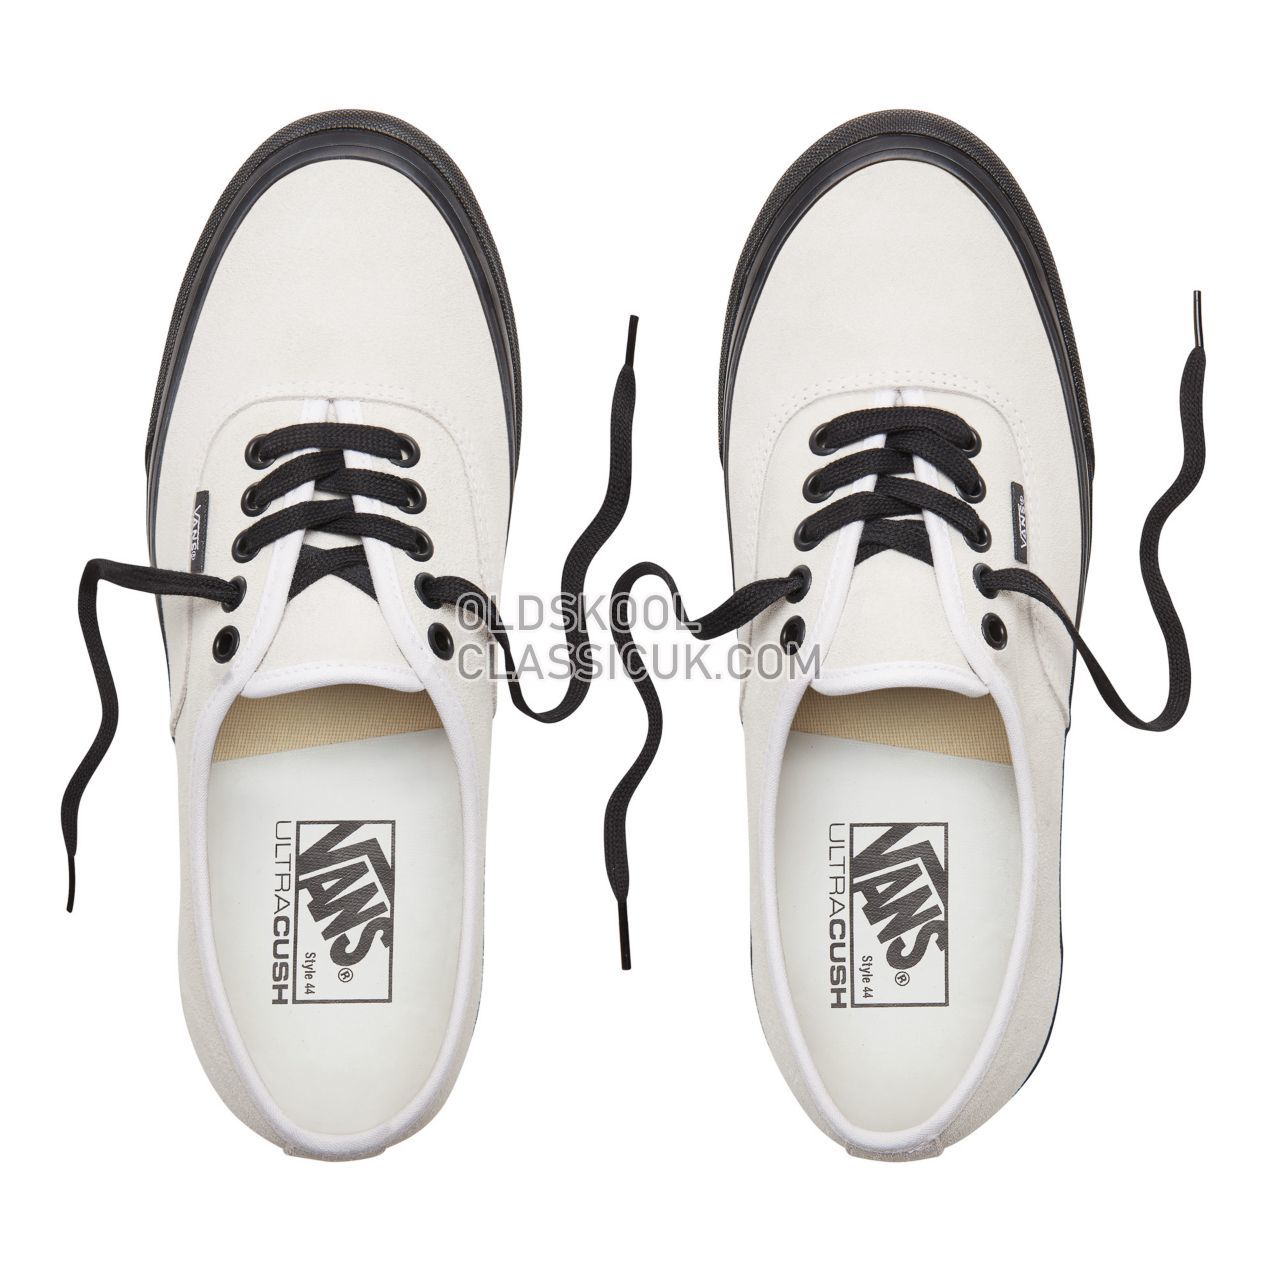 Vans Anaheim Factory Authentic 44 Dx Sneakers Mens (Anaheim Factory) Og White/Suede VN0A38ENUL4 Shoes